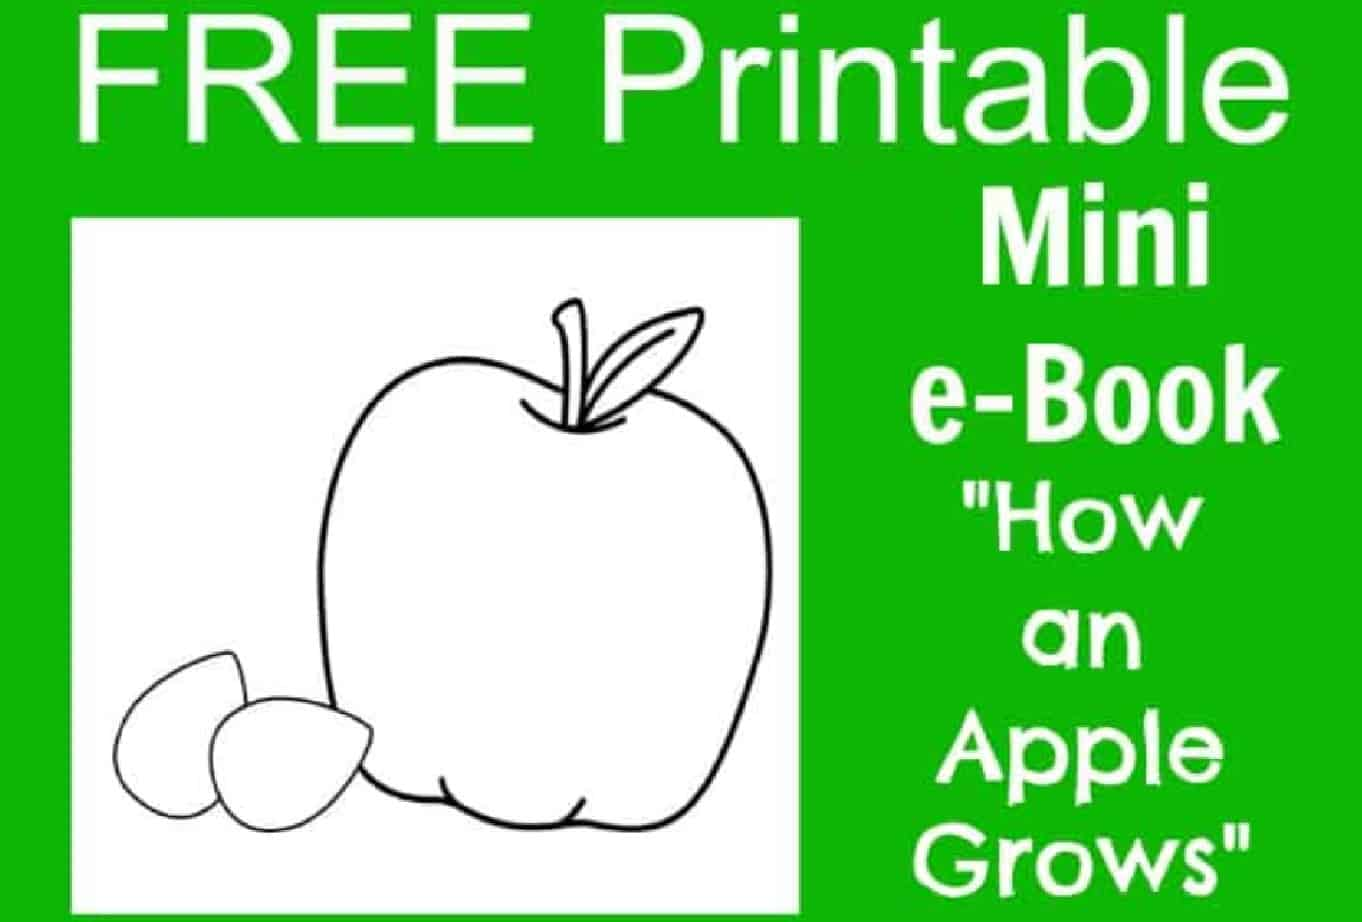 hight resolution of FREE Apple Life Cycle Printable e-Book for Kids